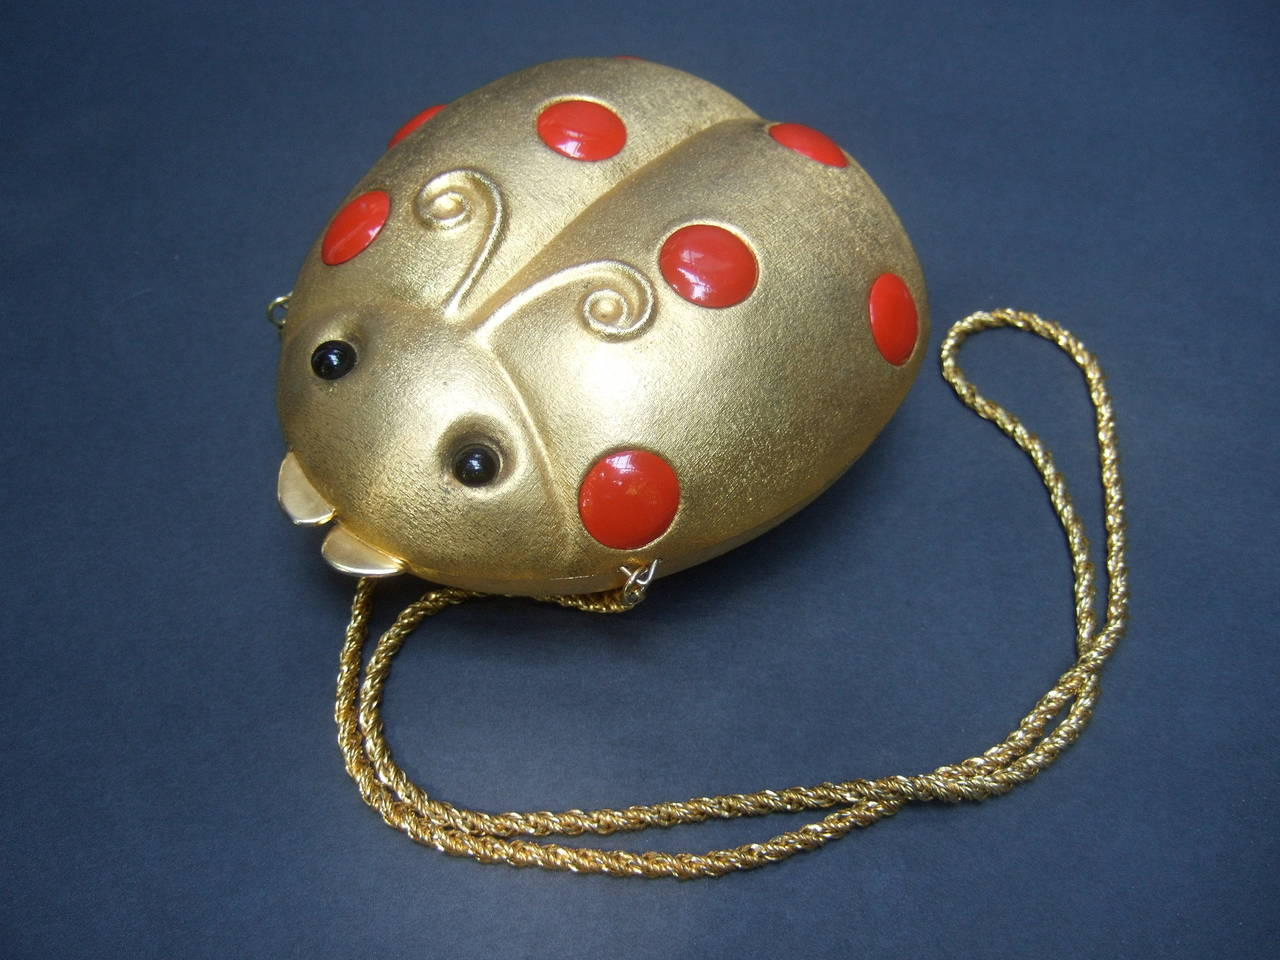 Brown Saks Fifth Avenue Gilt Metal Lady Bug Evening Bag Made in Italy c 1970 For Sale